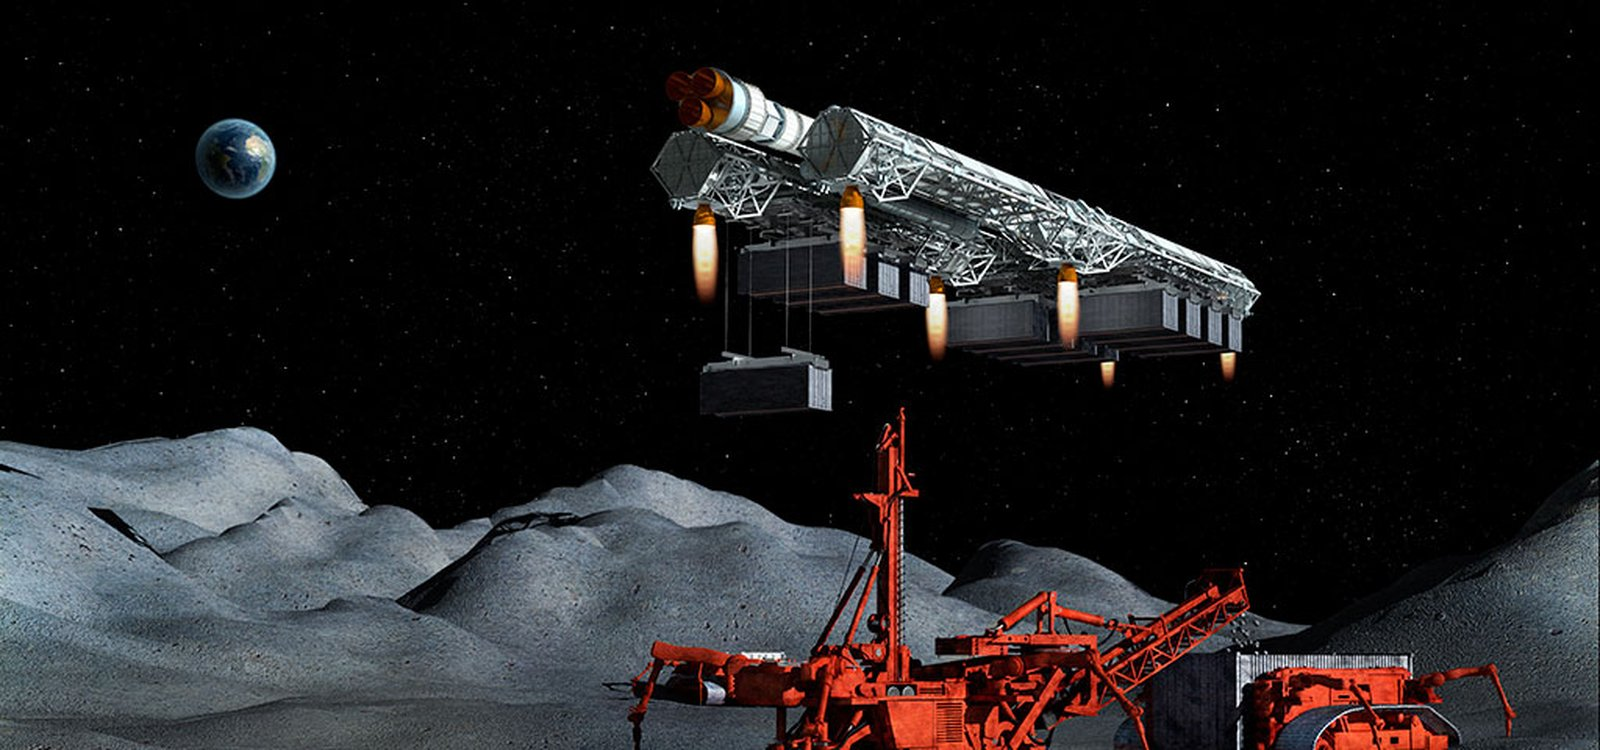 <p>Theoretically, there are many ways to extract the essential elements  from asteroids, including strip mining, shaft mining, heating and magnetic rakes for mining heavy metals.</p>